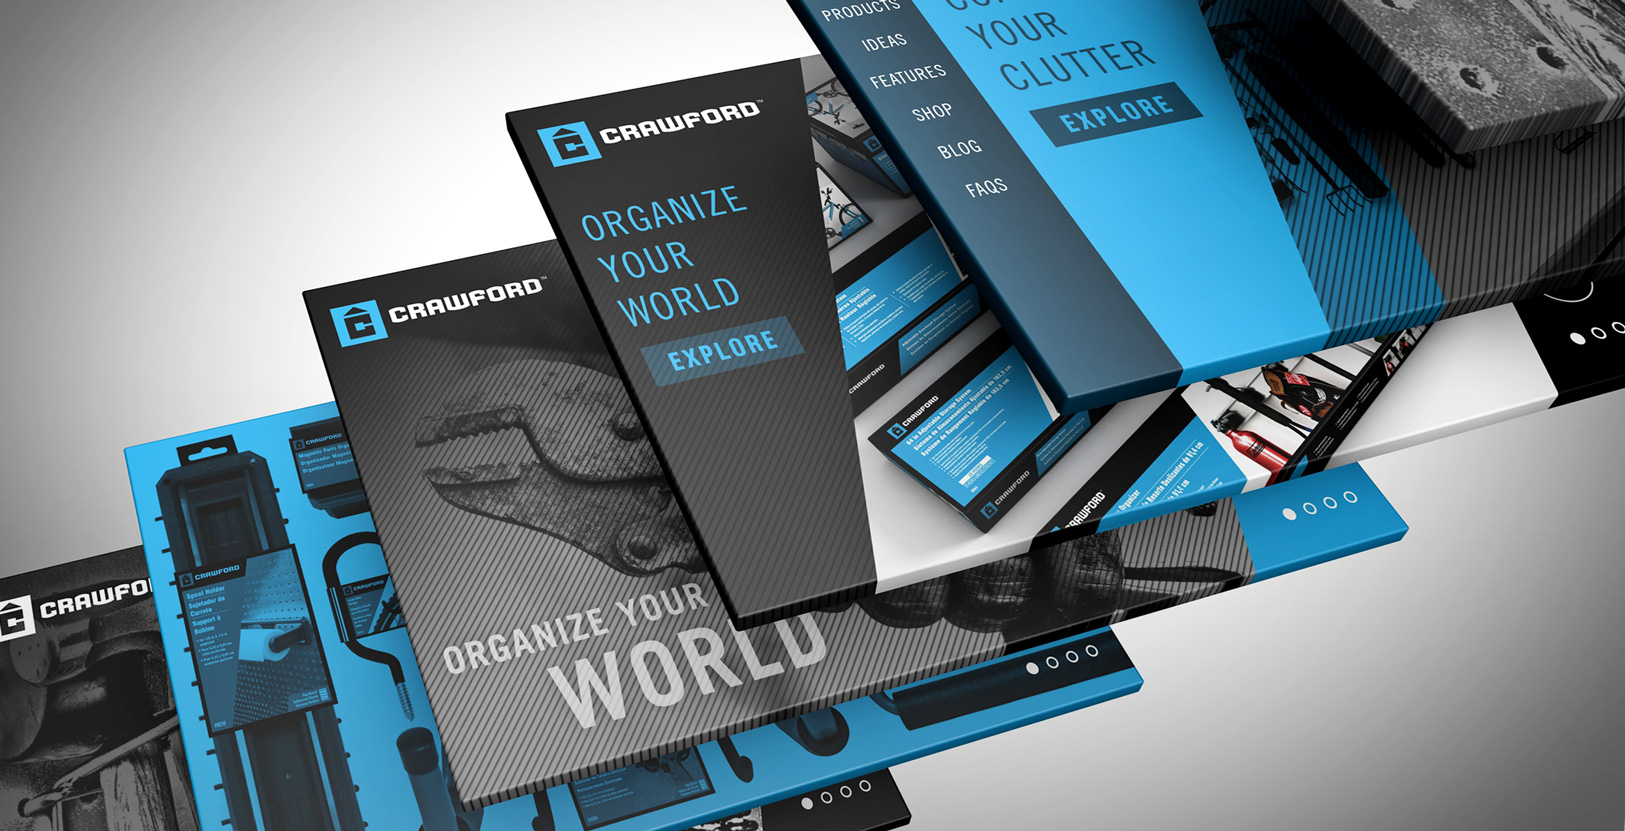 crawford-rebrand-identity-app-screen-page-layout-digital-ads-website-graphics-industrial-bold-black-and-blue-cyan-modern-clean-design-retail-graphics-packaging